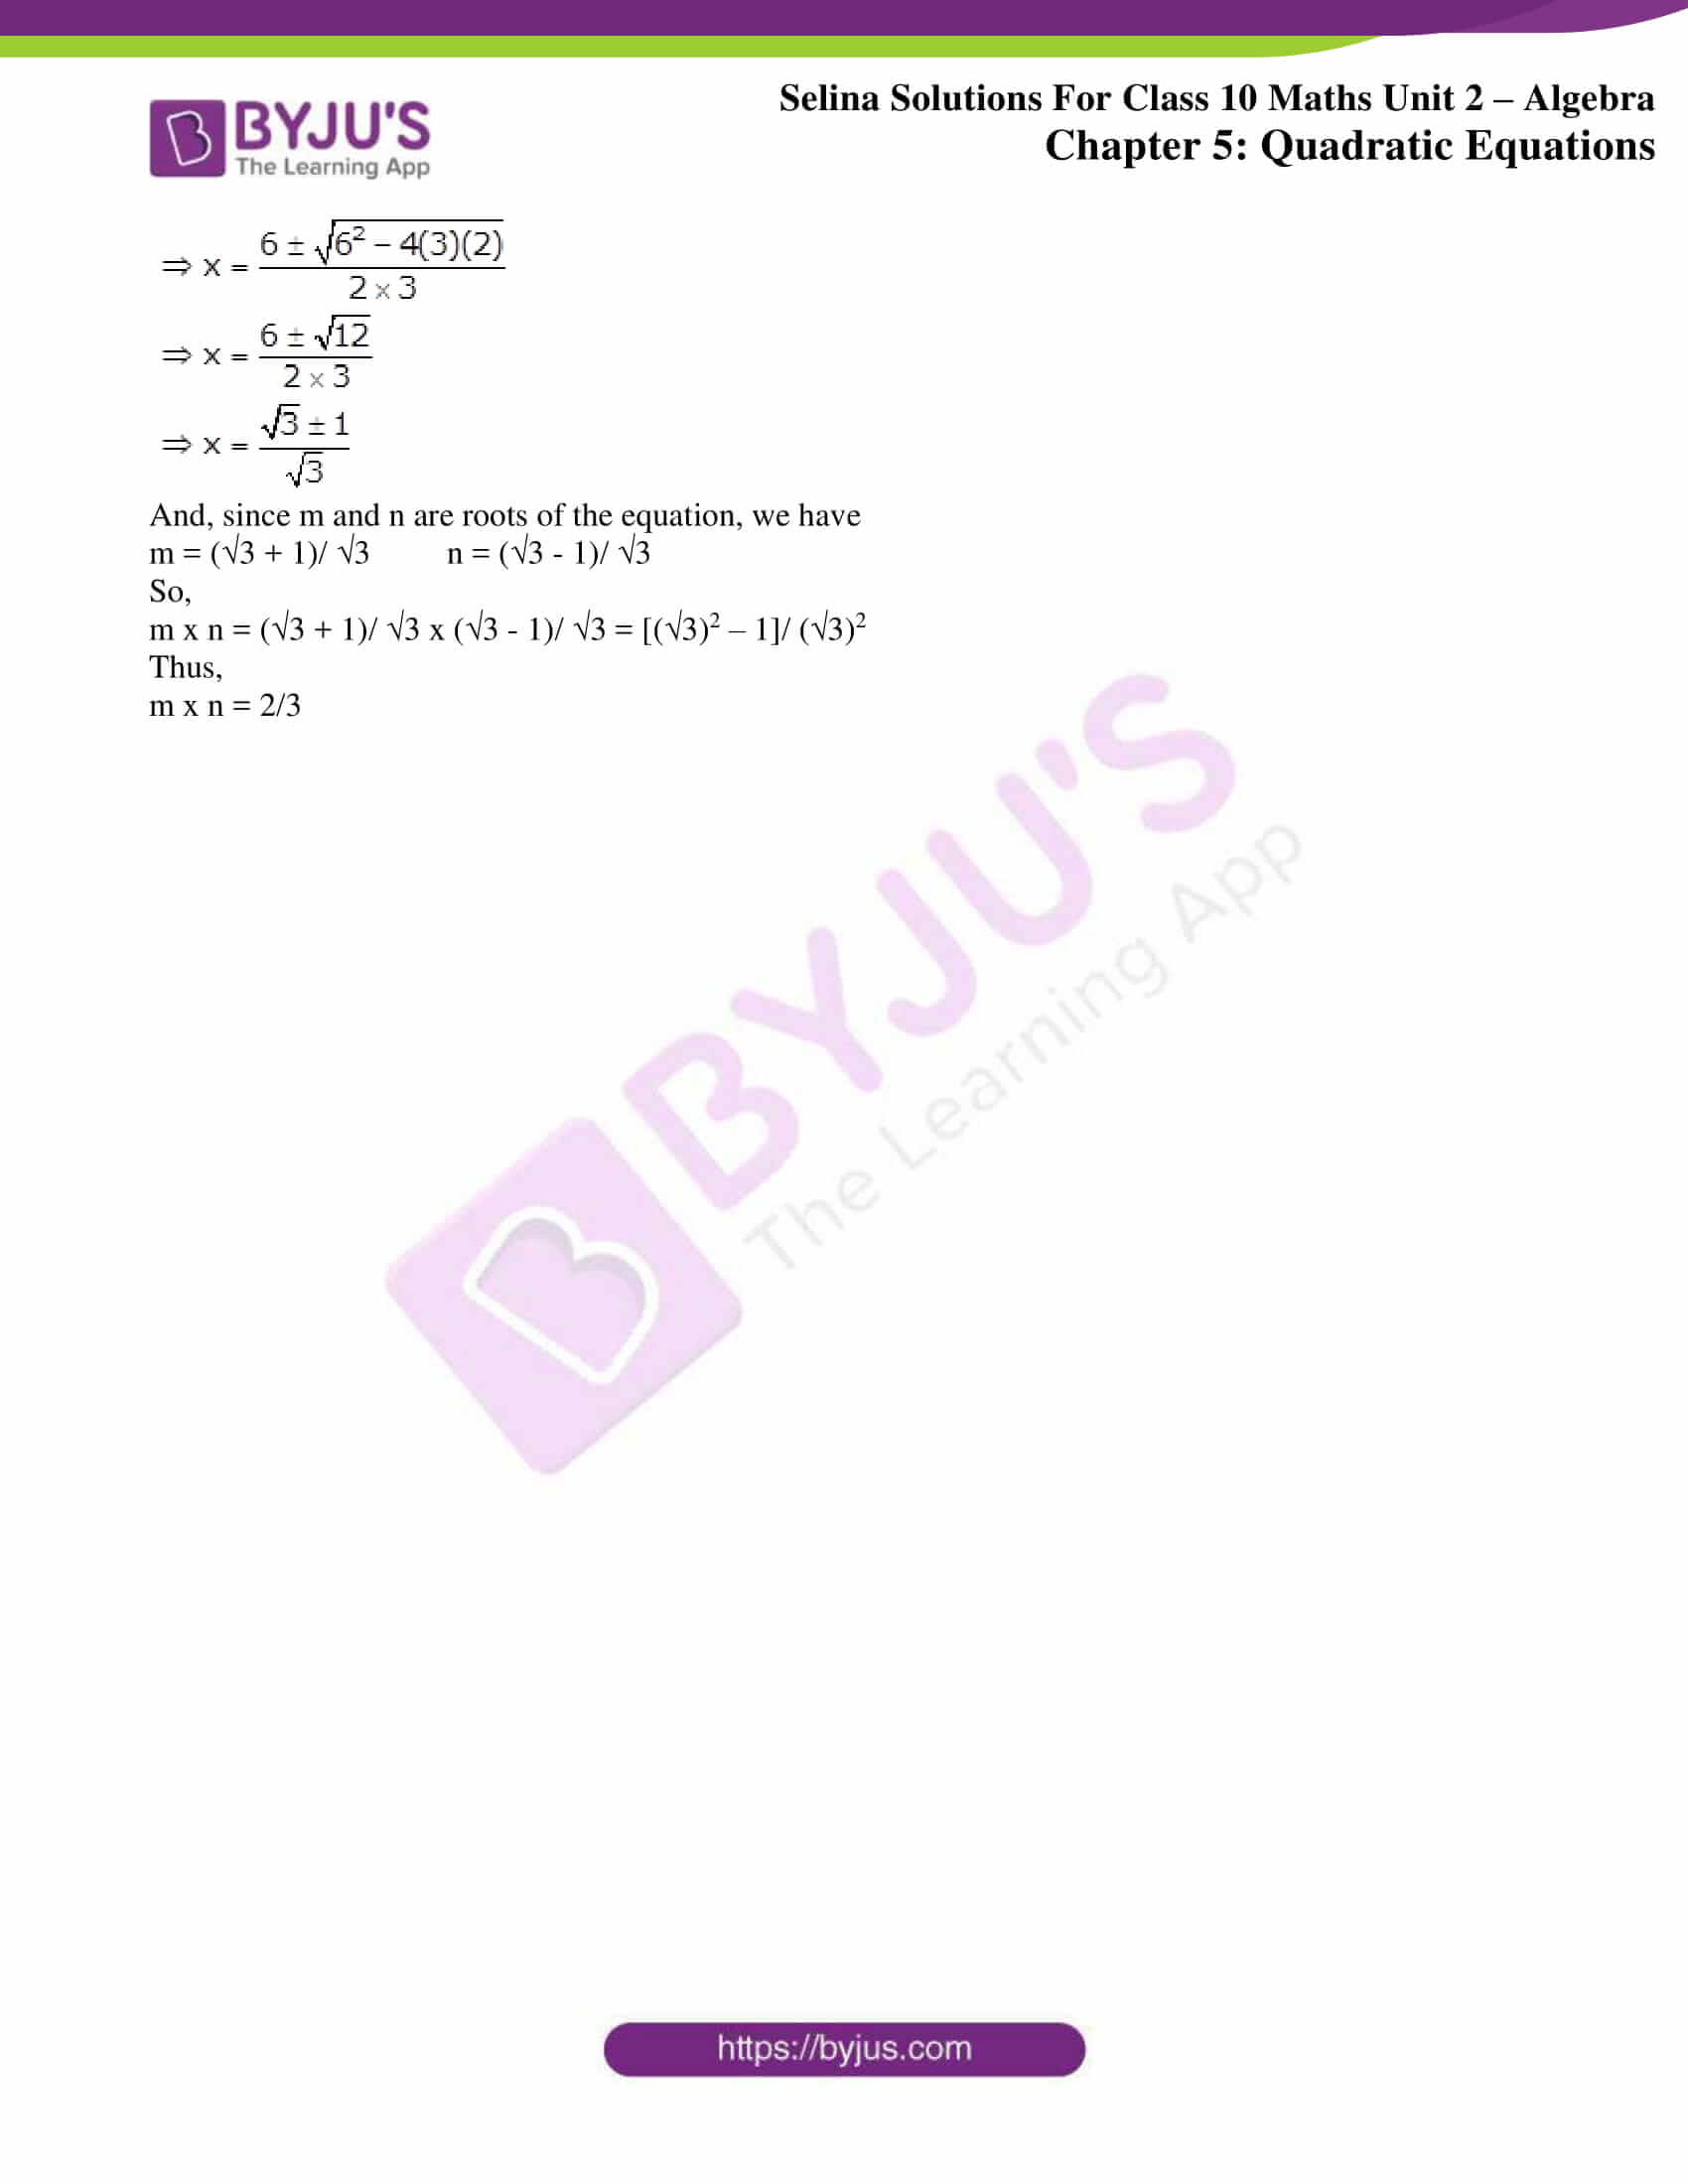 selina solution concise maths class 10 chapter 5f